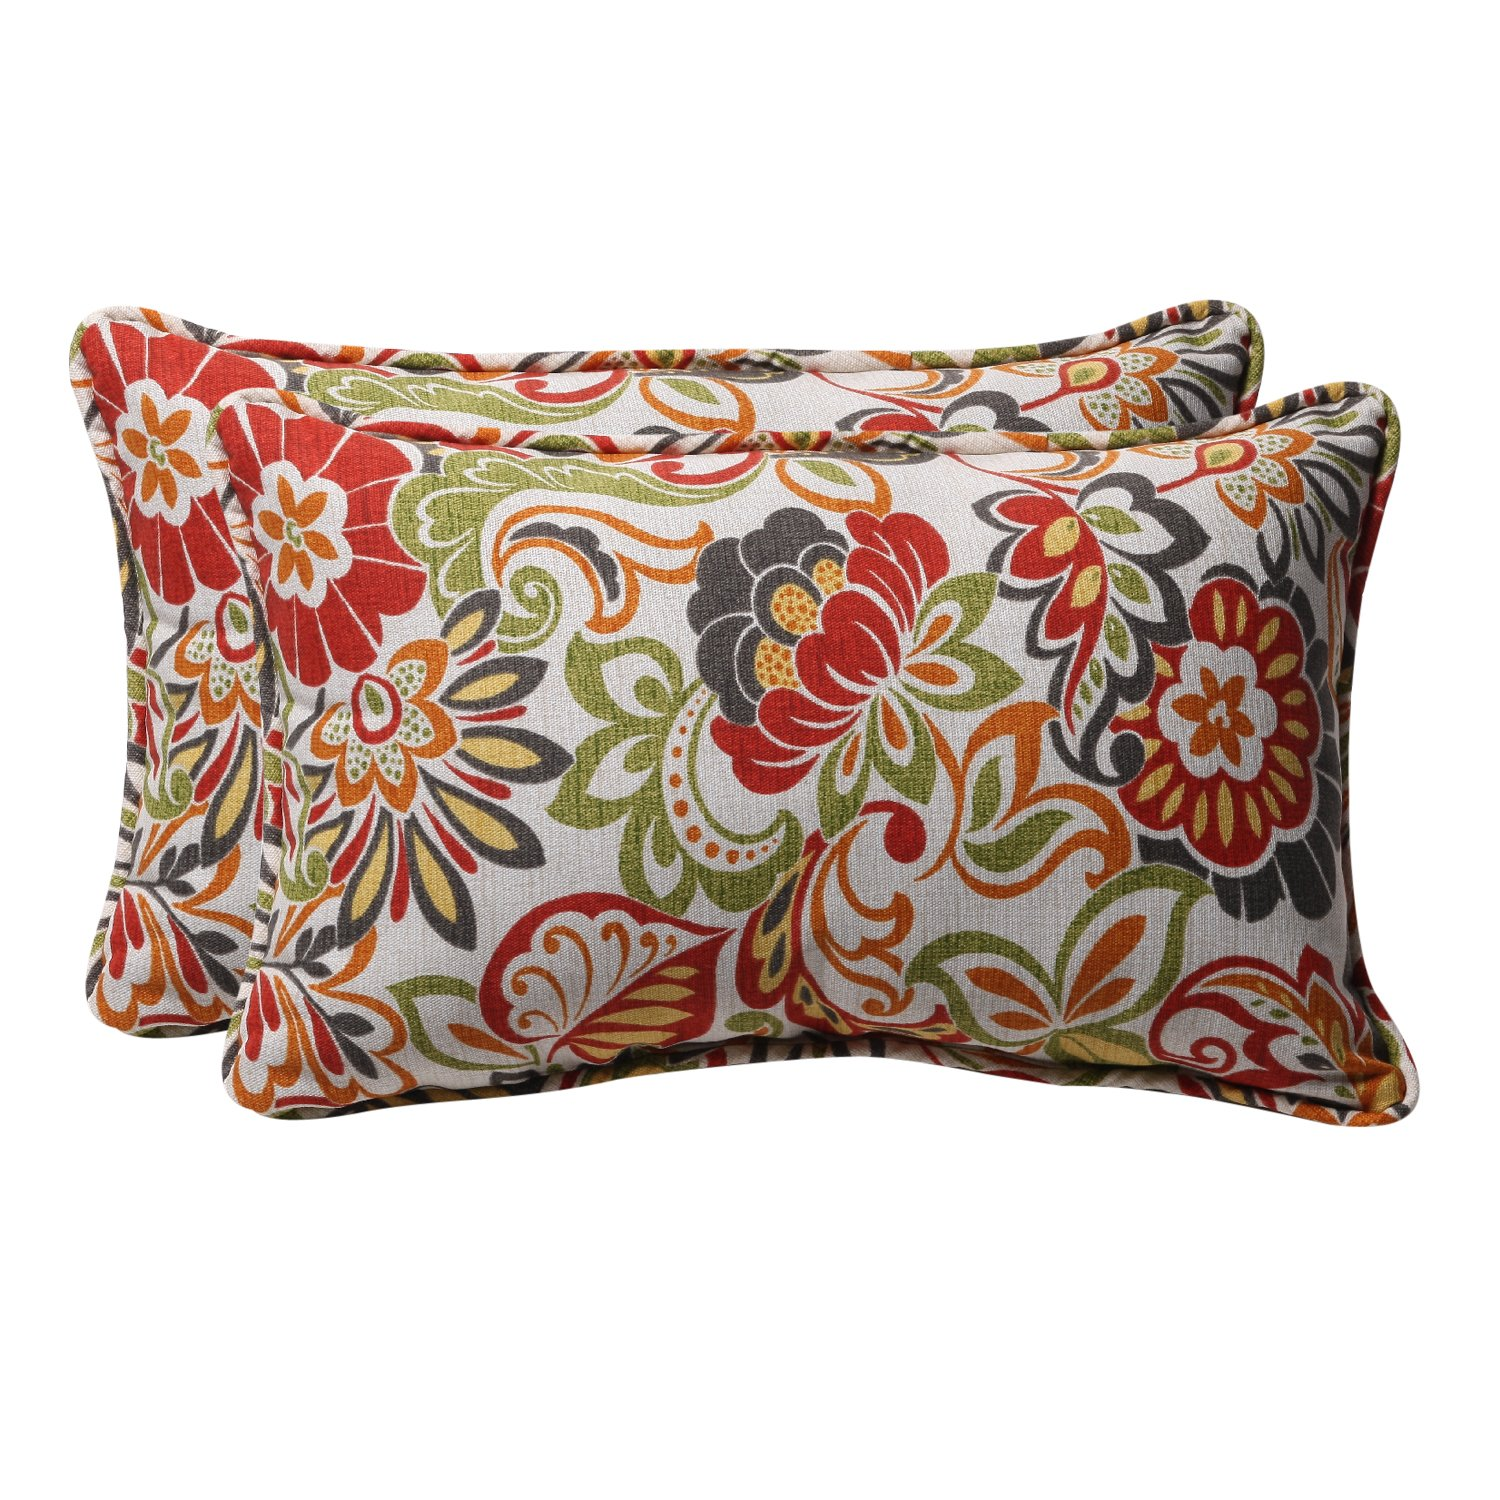 Bon Amazon.com: Pillow Perfect Decorative Multicolored Modern Floral Rectangle  Toss Pillows, 2 Pack: Home U0026 Kitchen